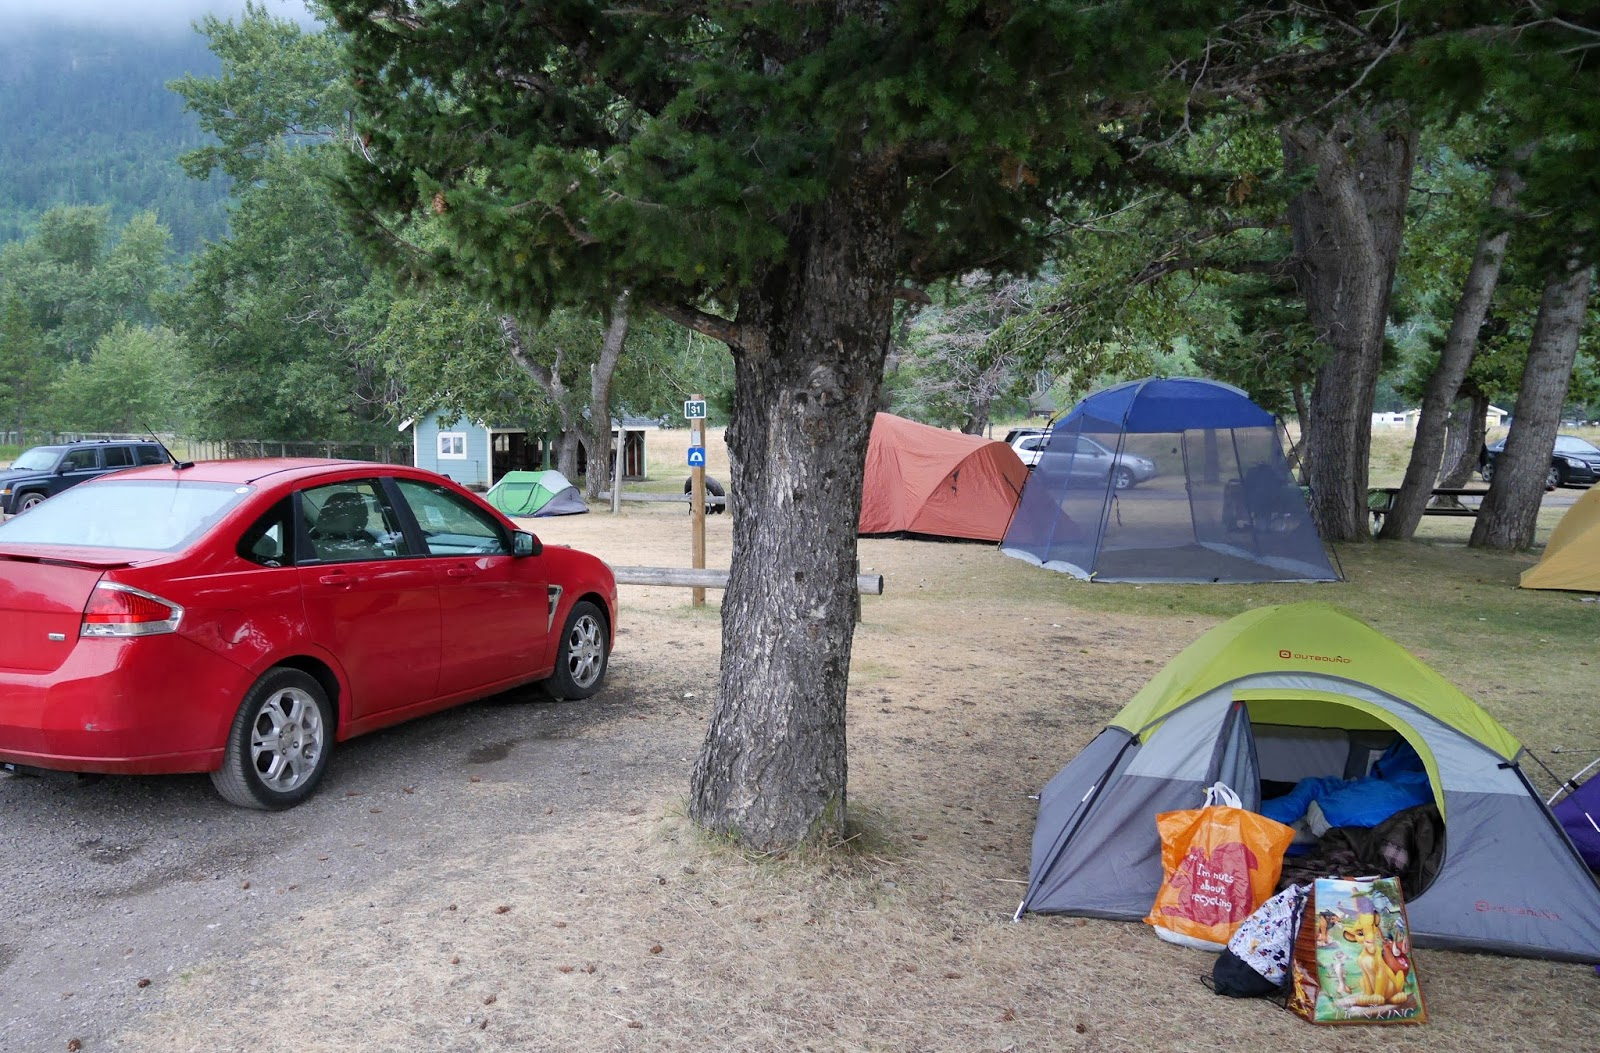 Camping in Waterton Lakes National Park, Alberta